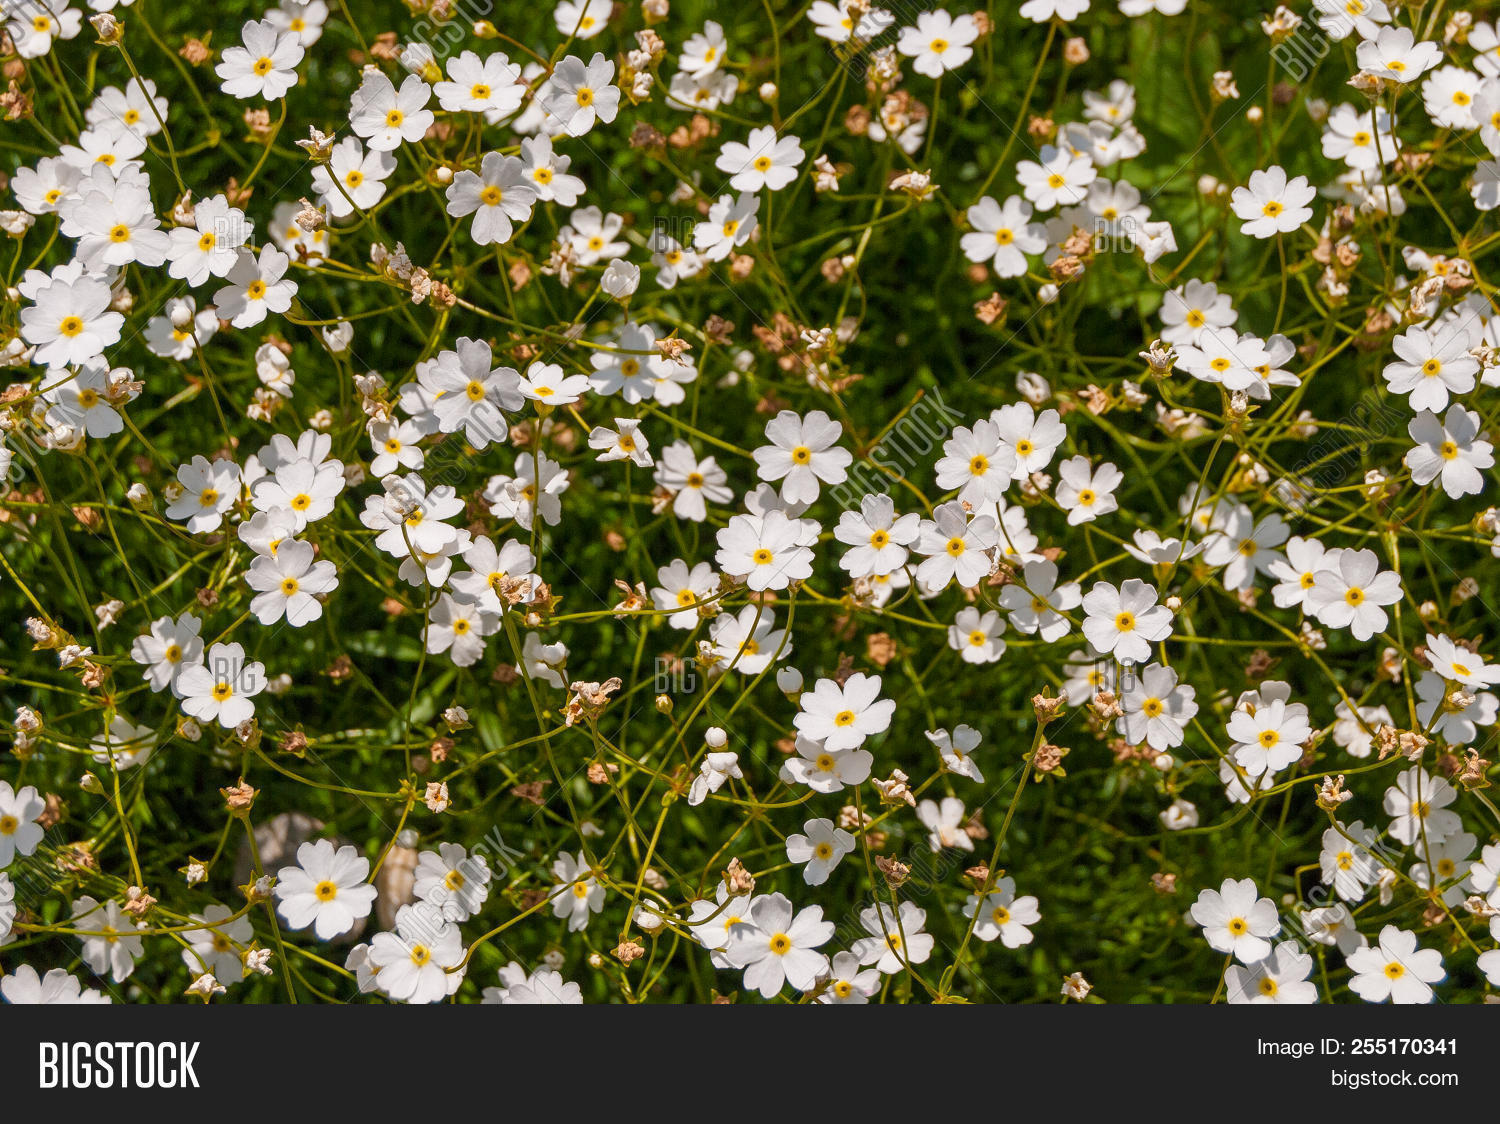 Androsace Lactea White Alpine Flowers In The Mountains Of